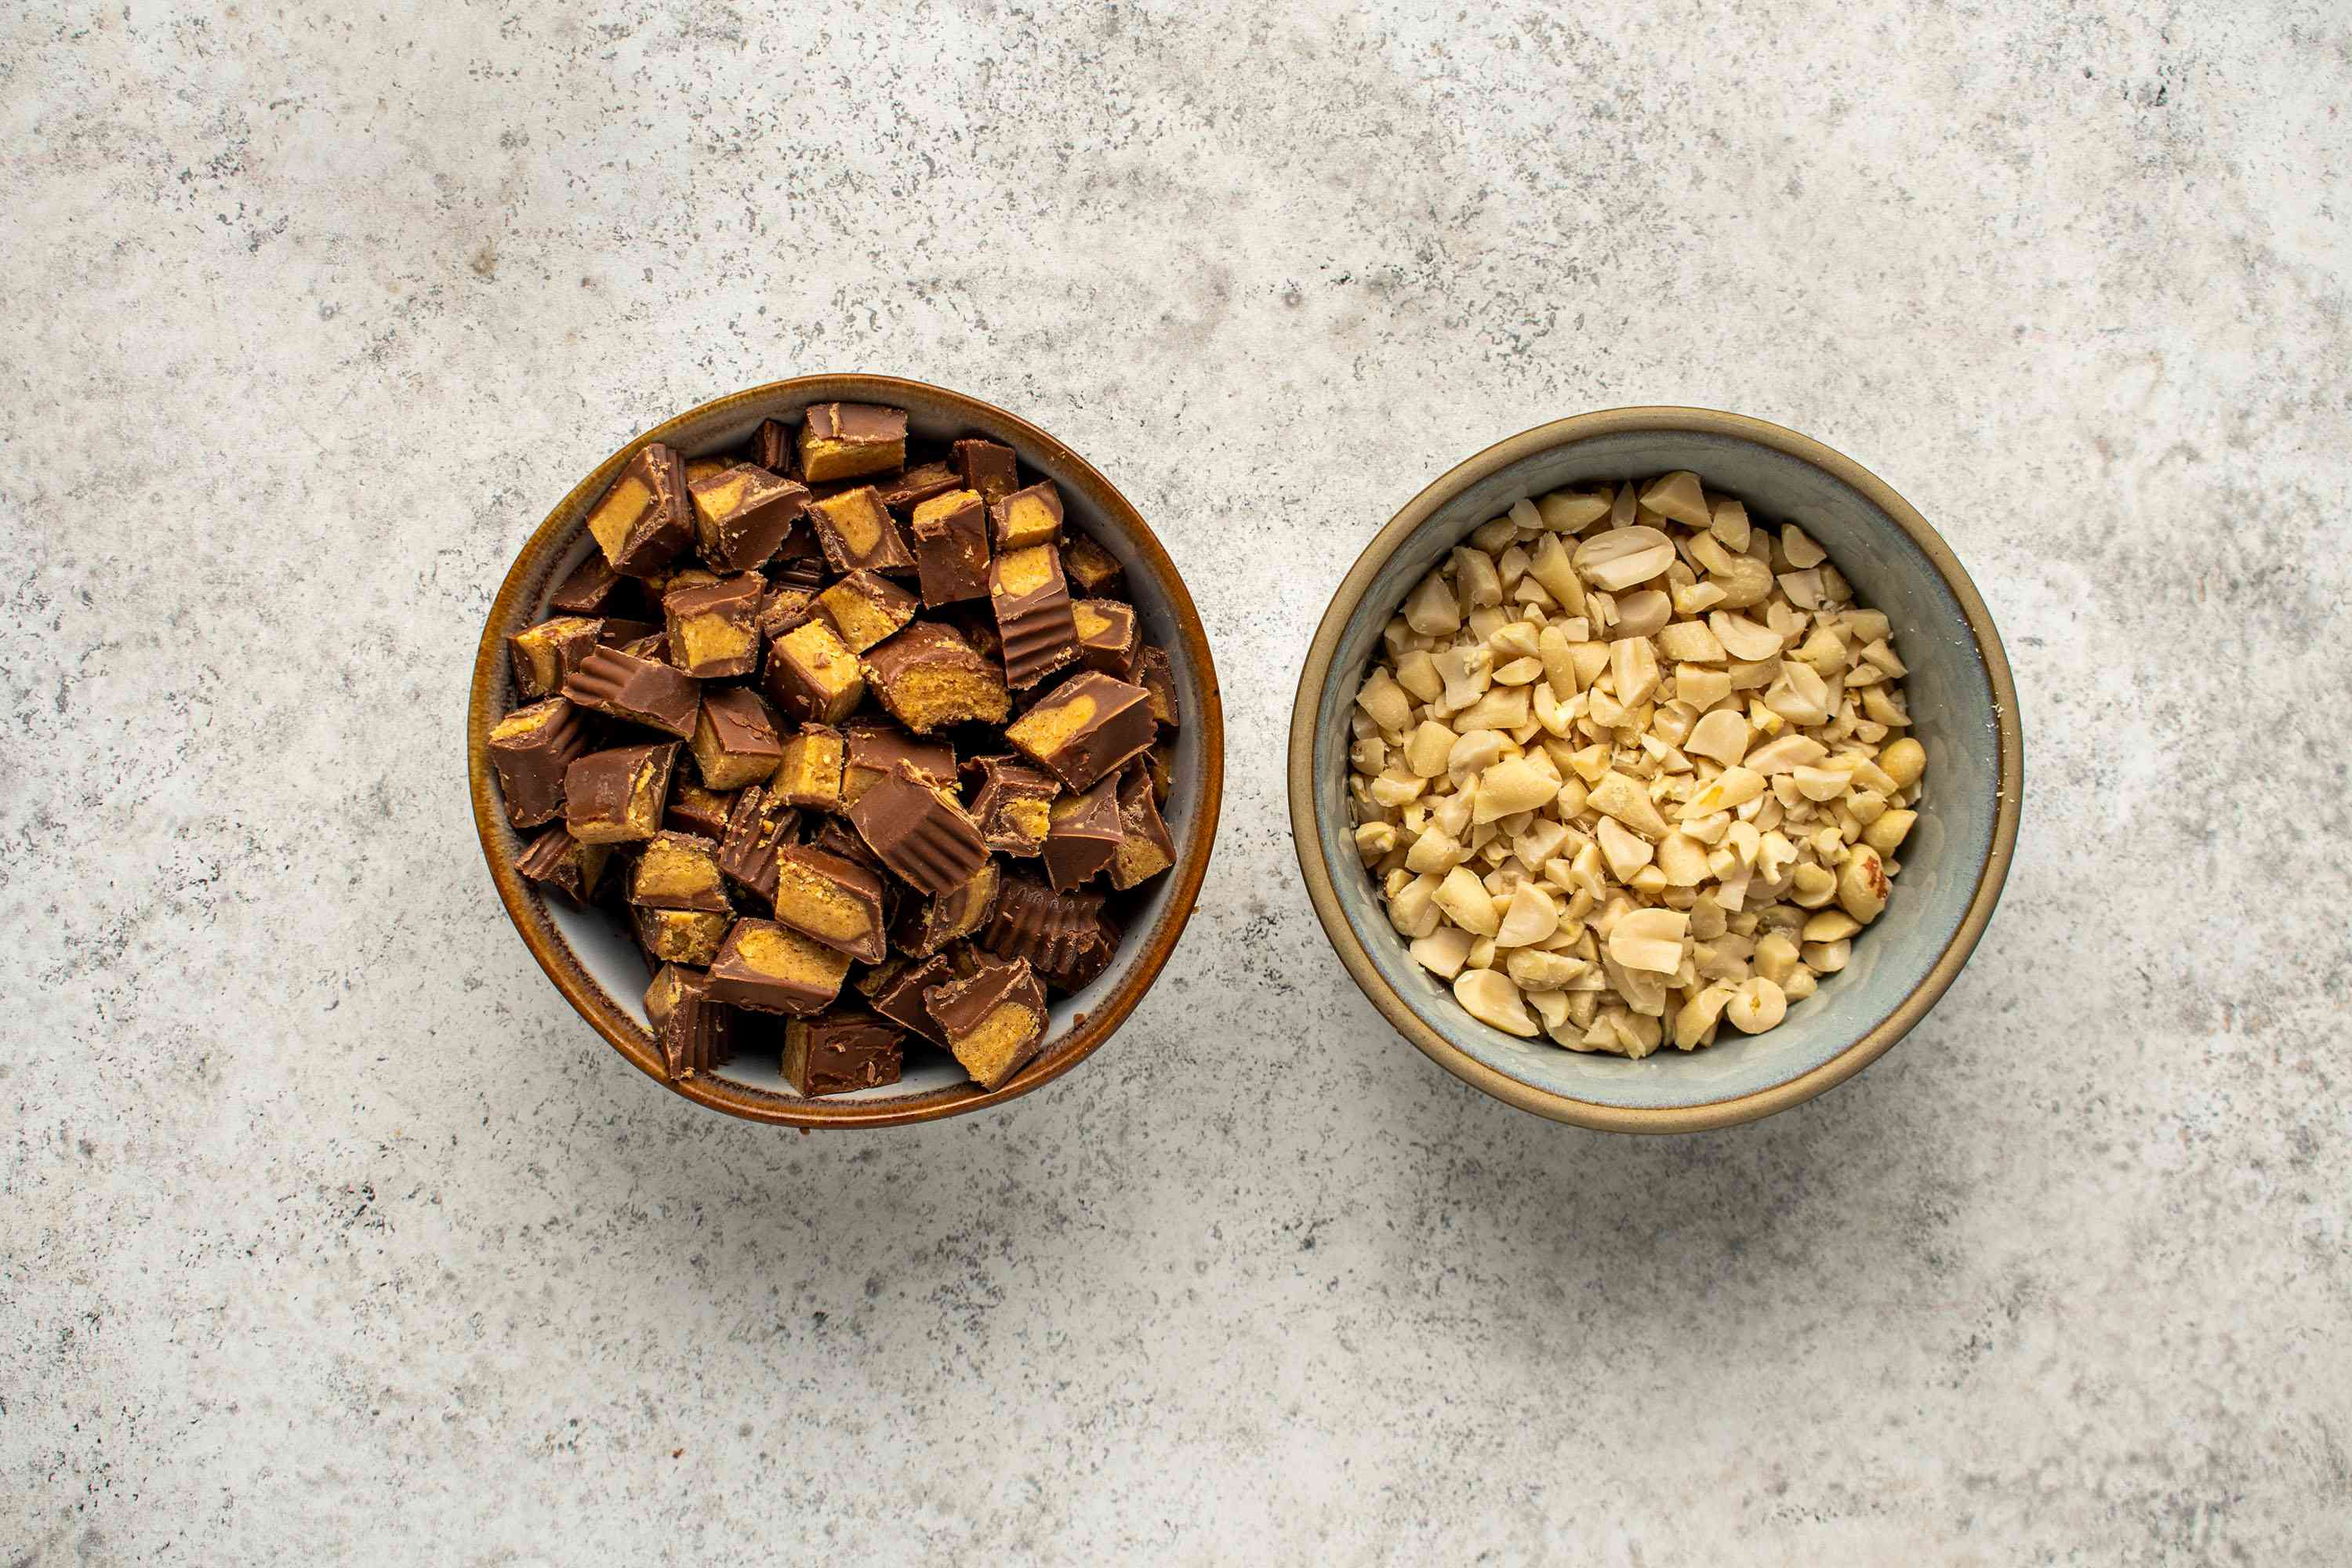 Place the chopped peanut butter cups and peanuts in separate bowls